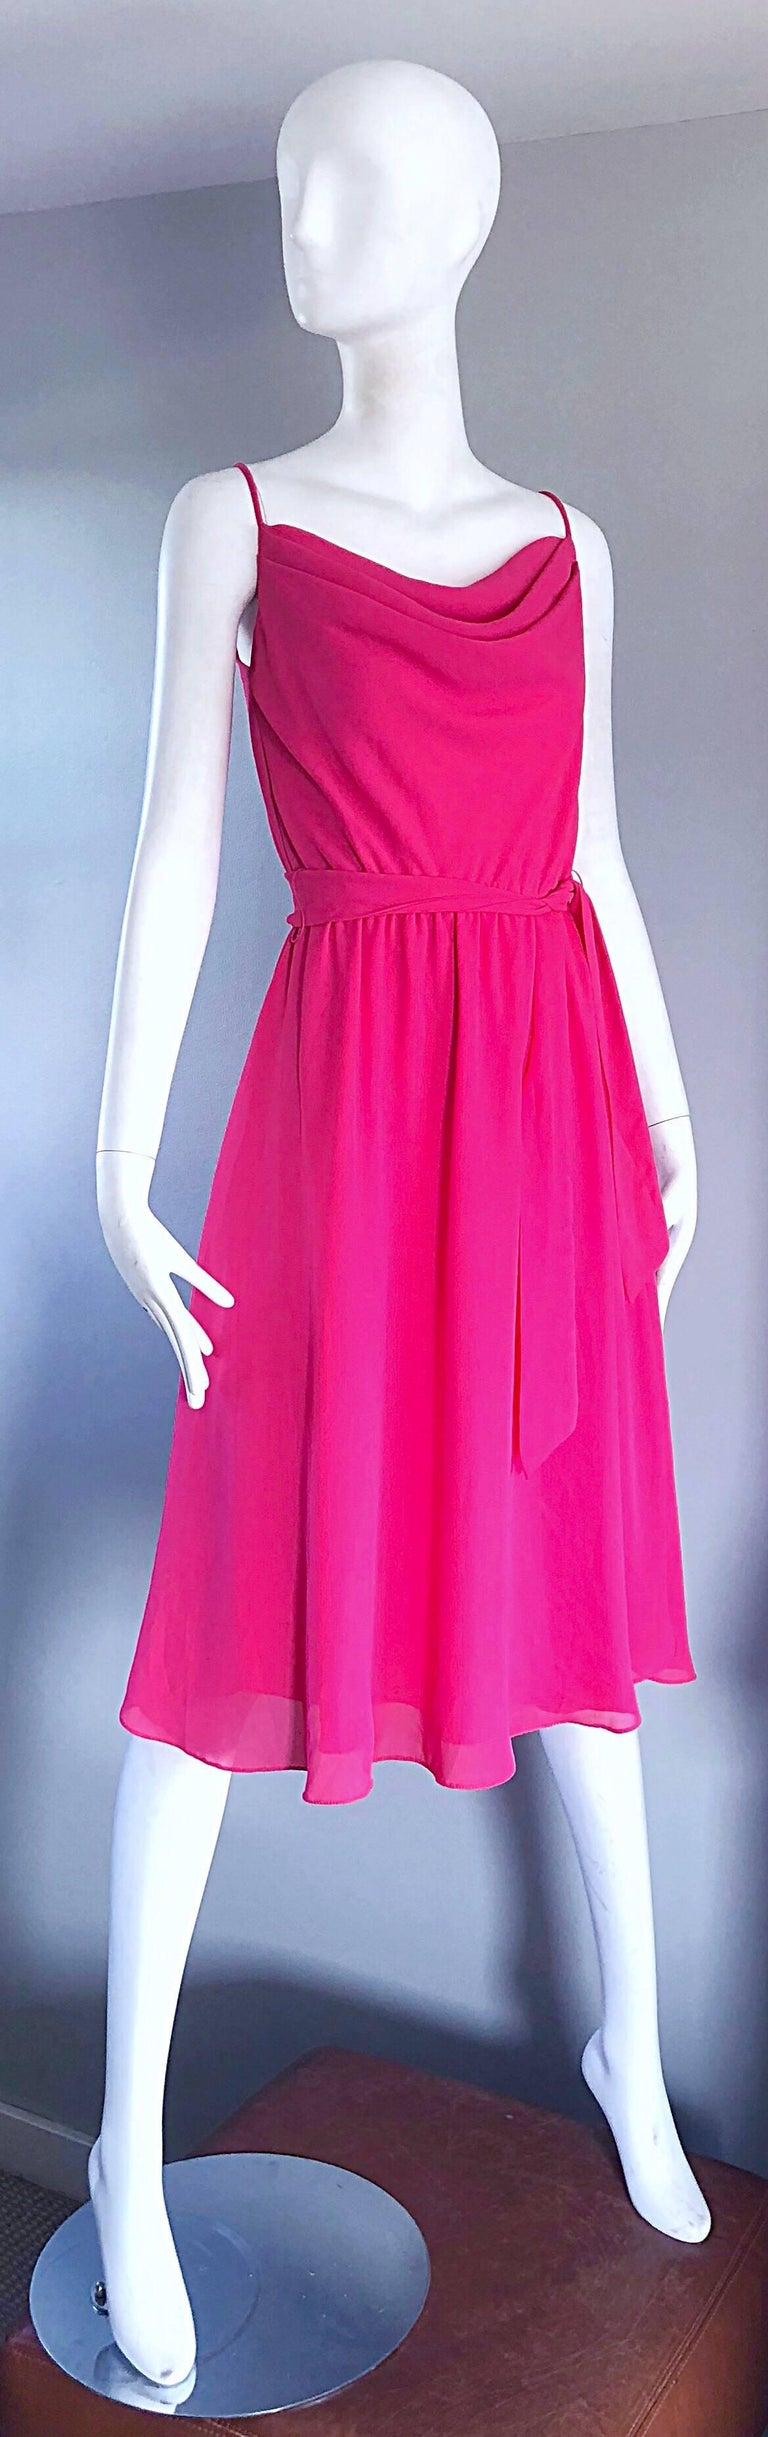 1970s Phillipe Jodur for Ferrali Hot Pink Crepe Sleeveless Belted Disco Dress In Excellent Condition For Sale In Chicago, IL